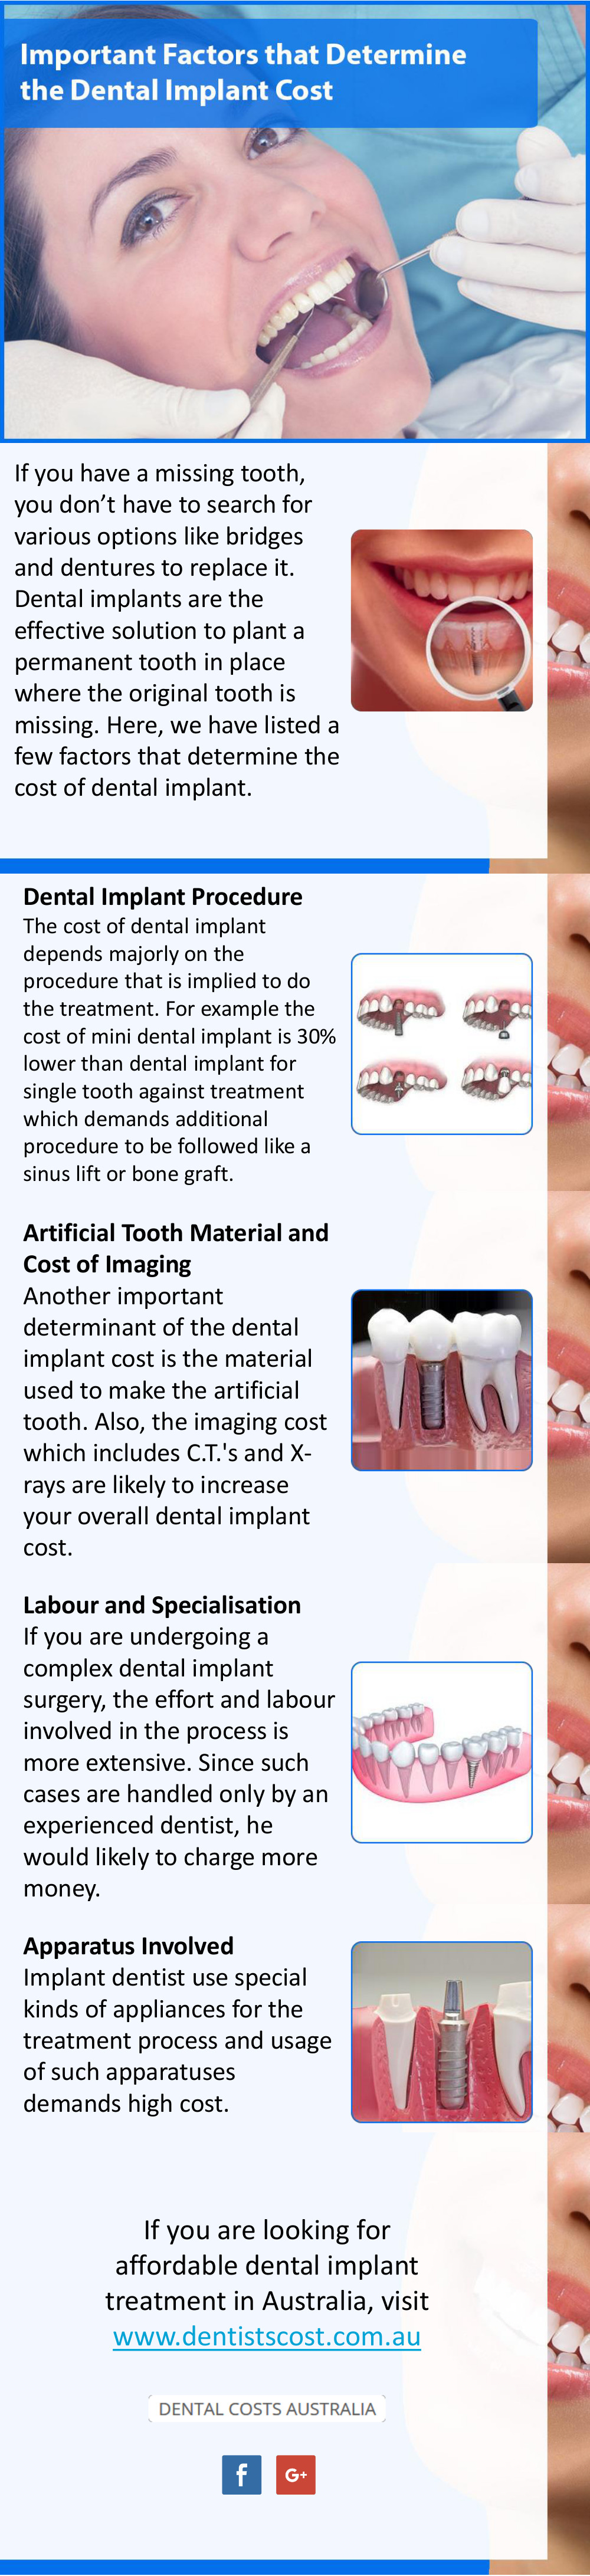 Important Factors that Affect the Dental Implant Cost in